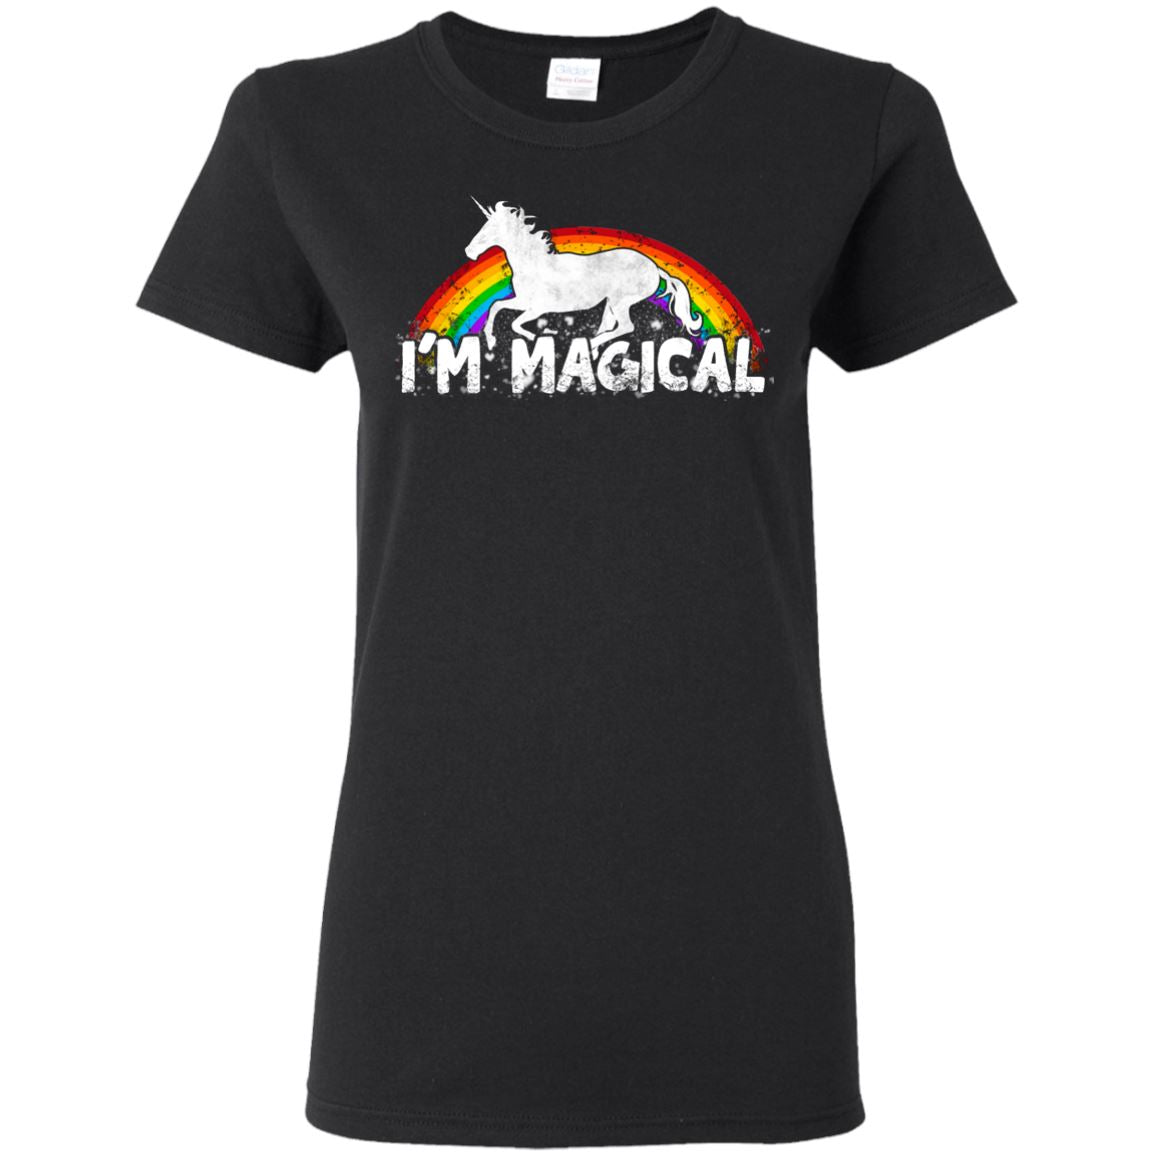 I'm Magical Ladies' T-Shirt Apparel Black S